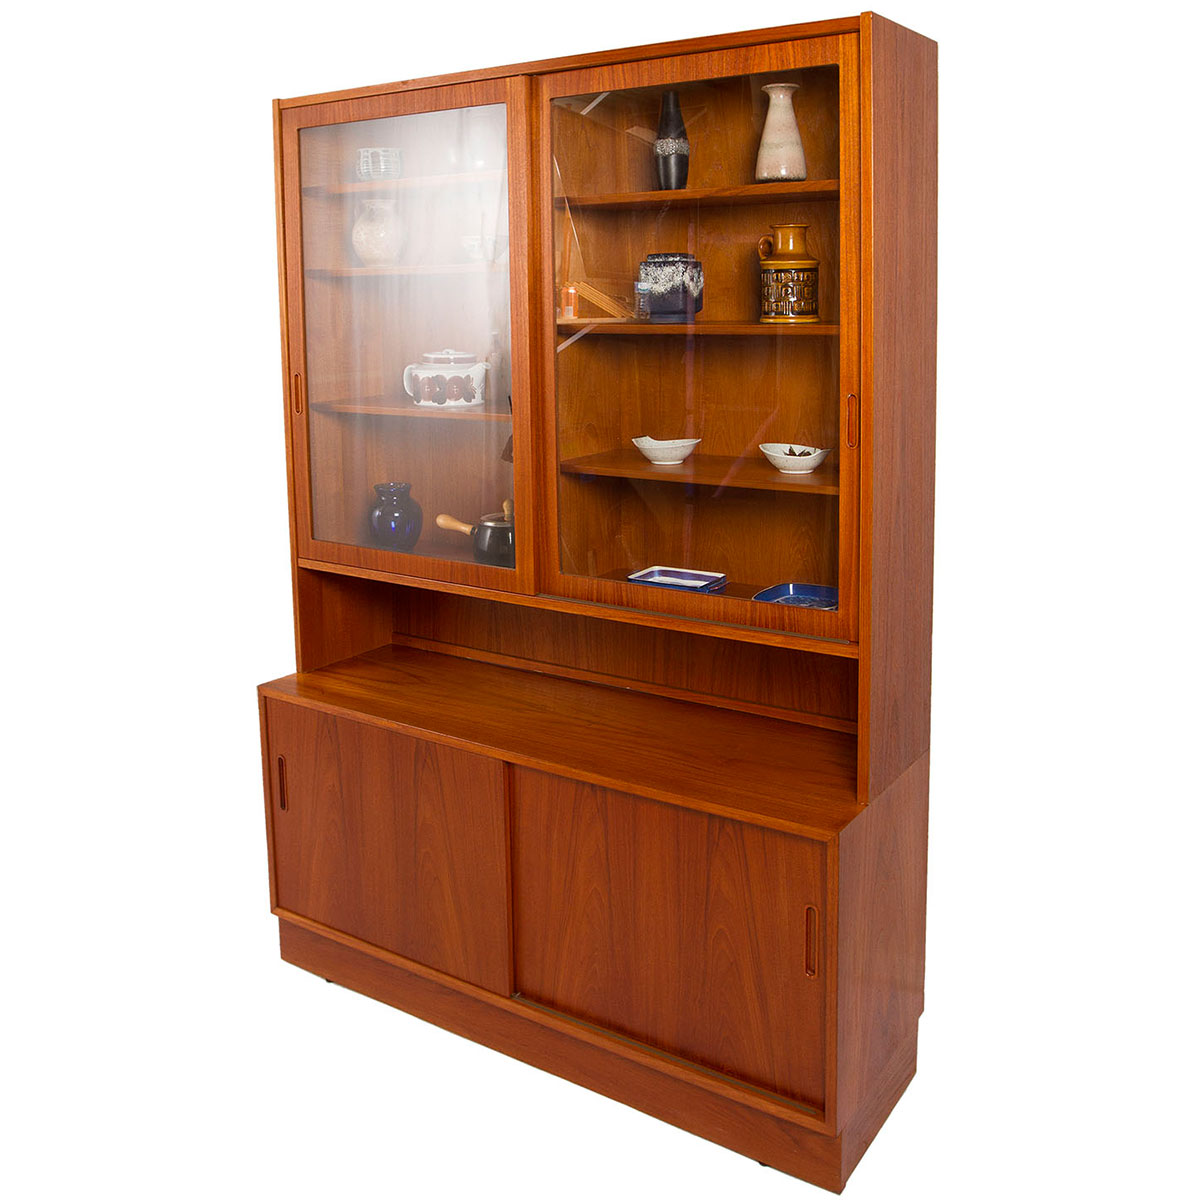 Danish Modern Teak Adjustable Display / Storage Unit